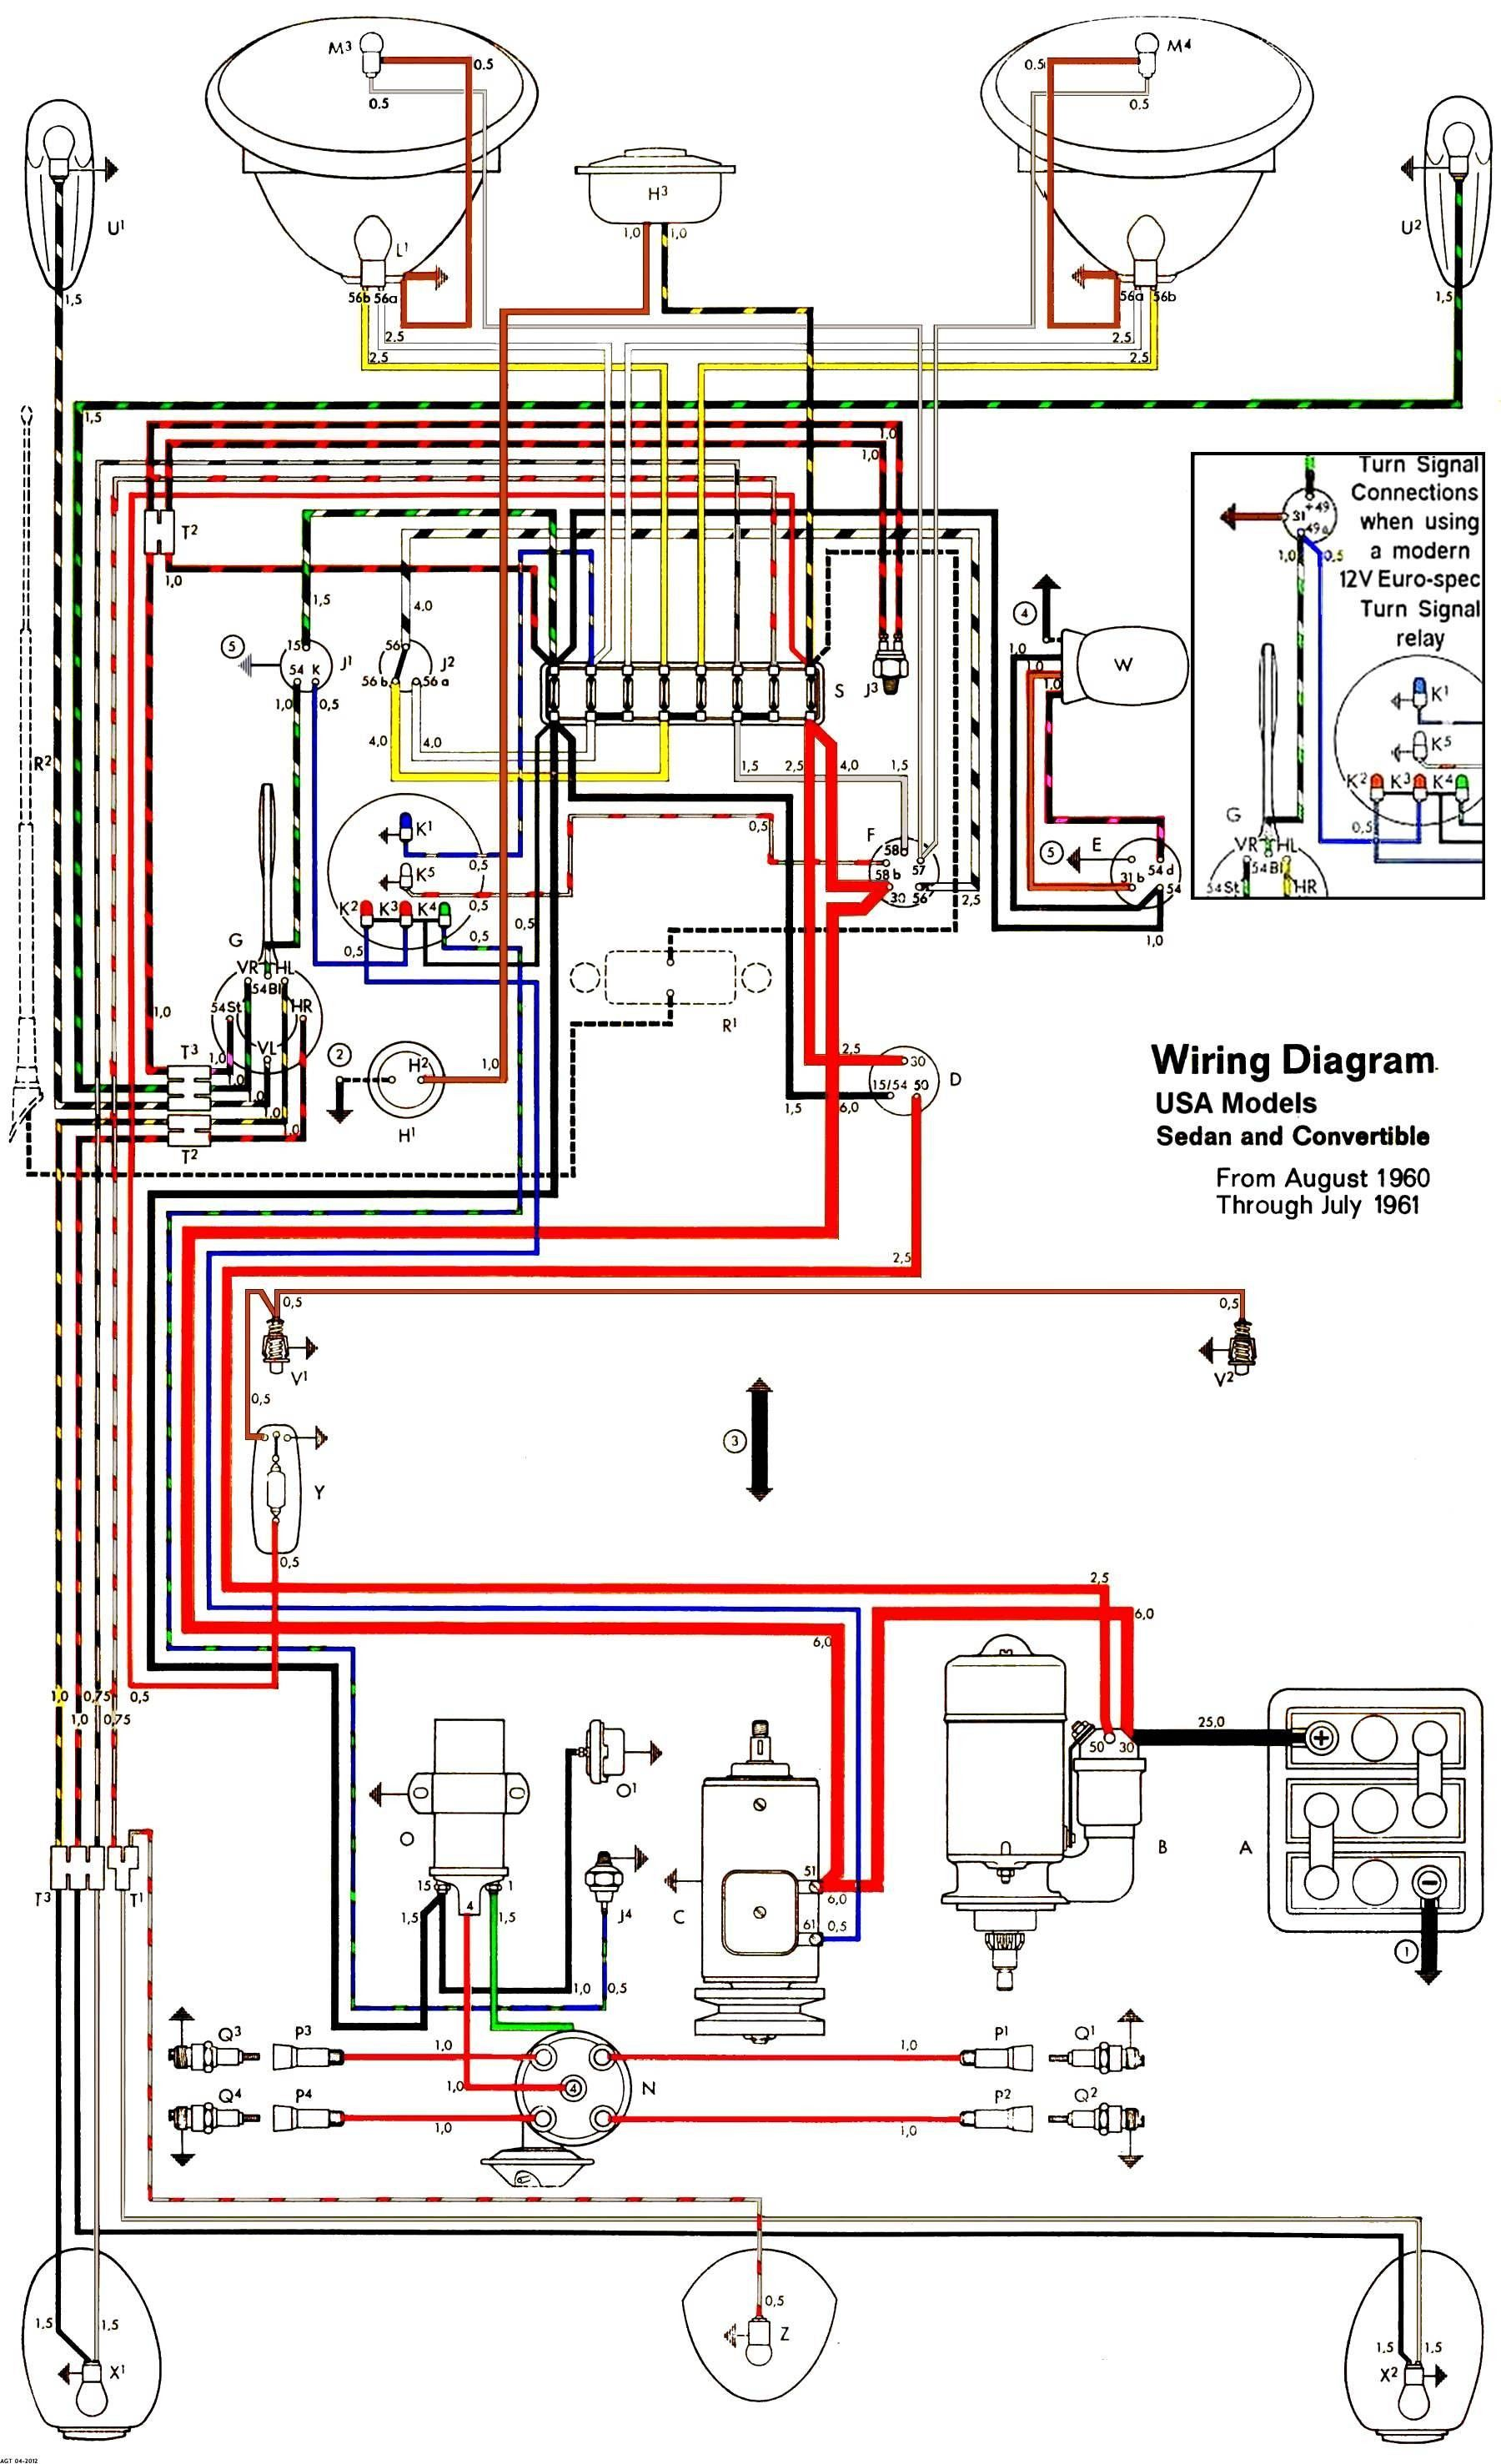 New Wiring Scheme Diagram Wiringdiagram Diagramming Diagramm Visuals Visualisation Graphical Vw Super Beetle Electrical Wiring Vw Beetles